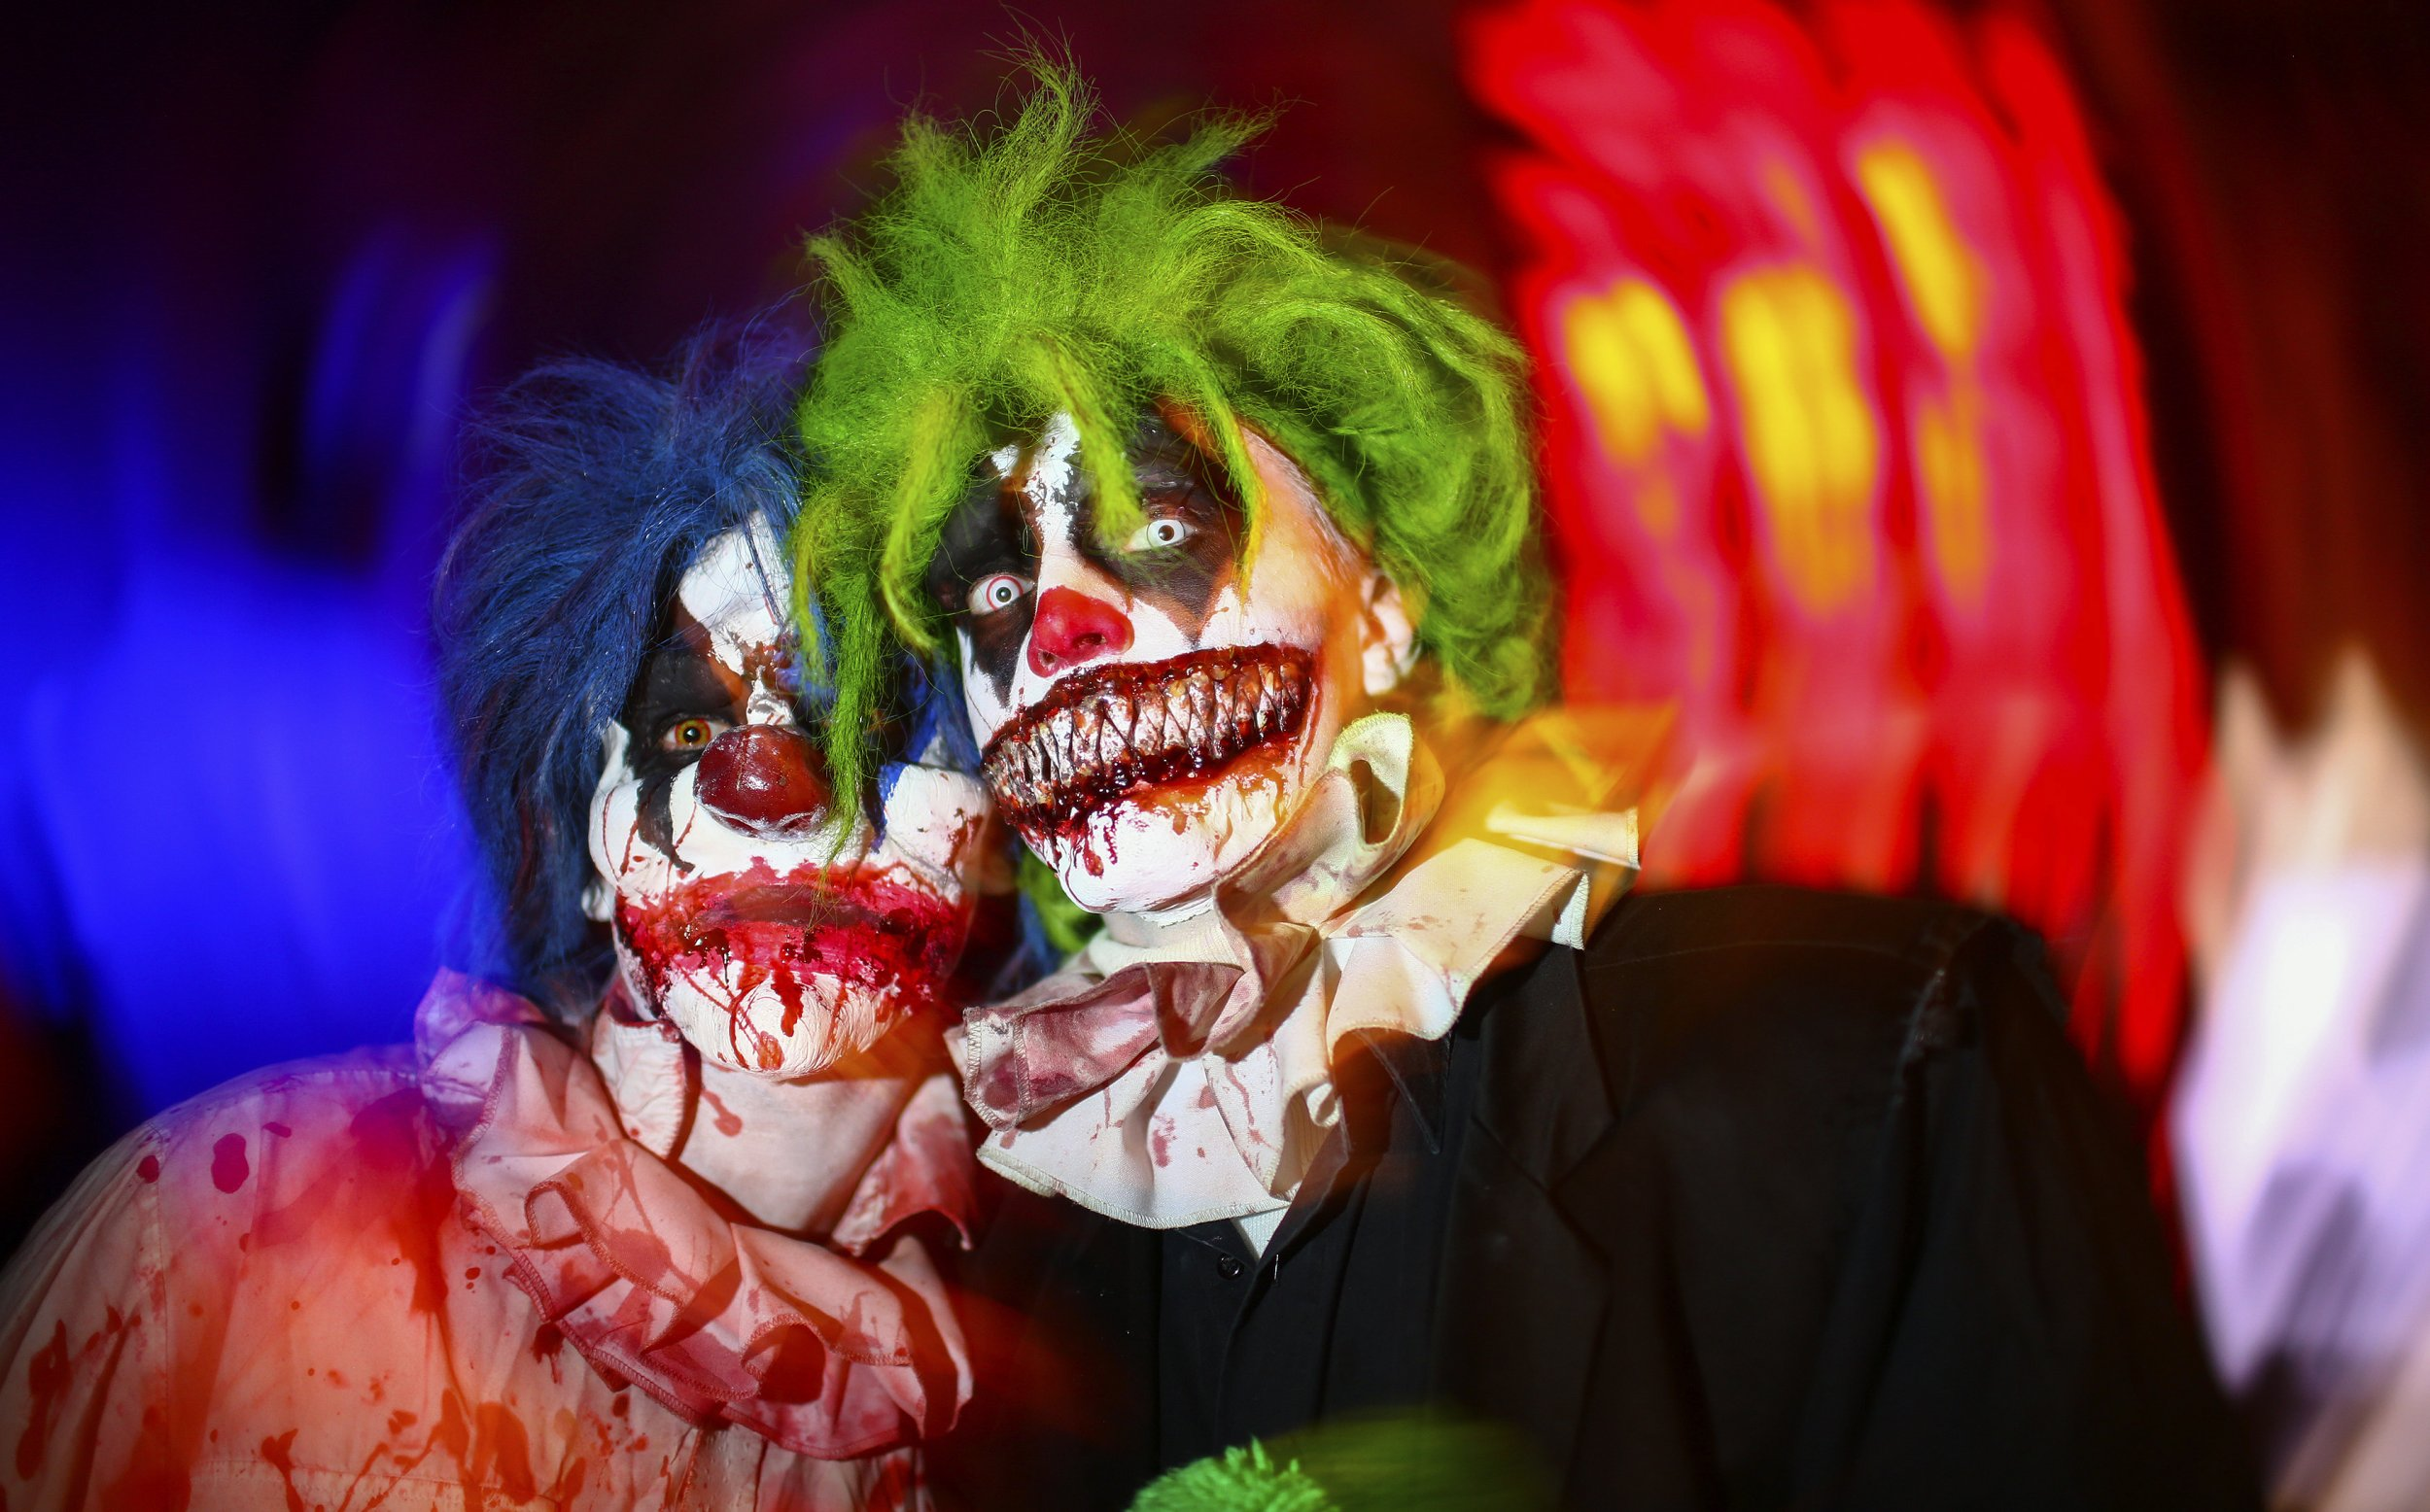 Killer Clowns